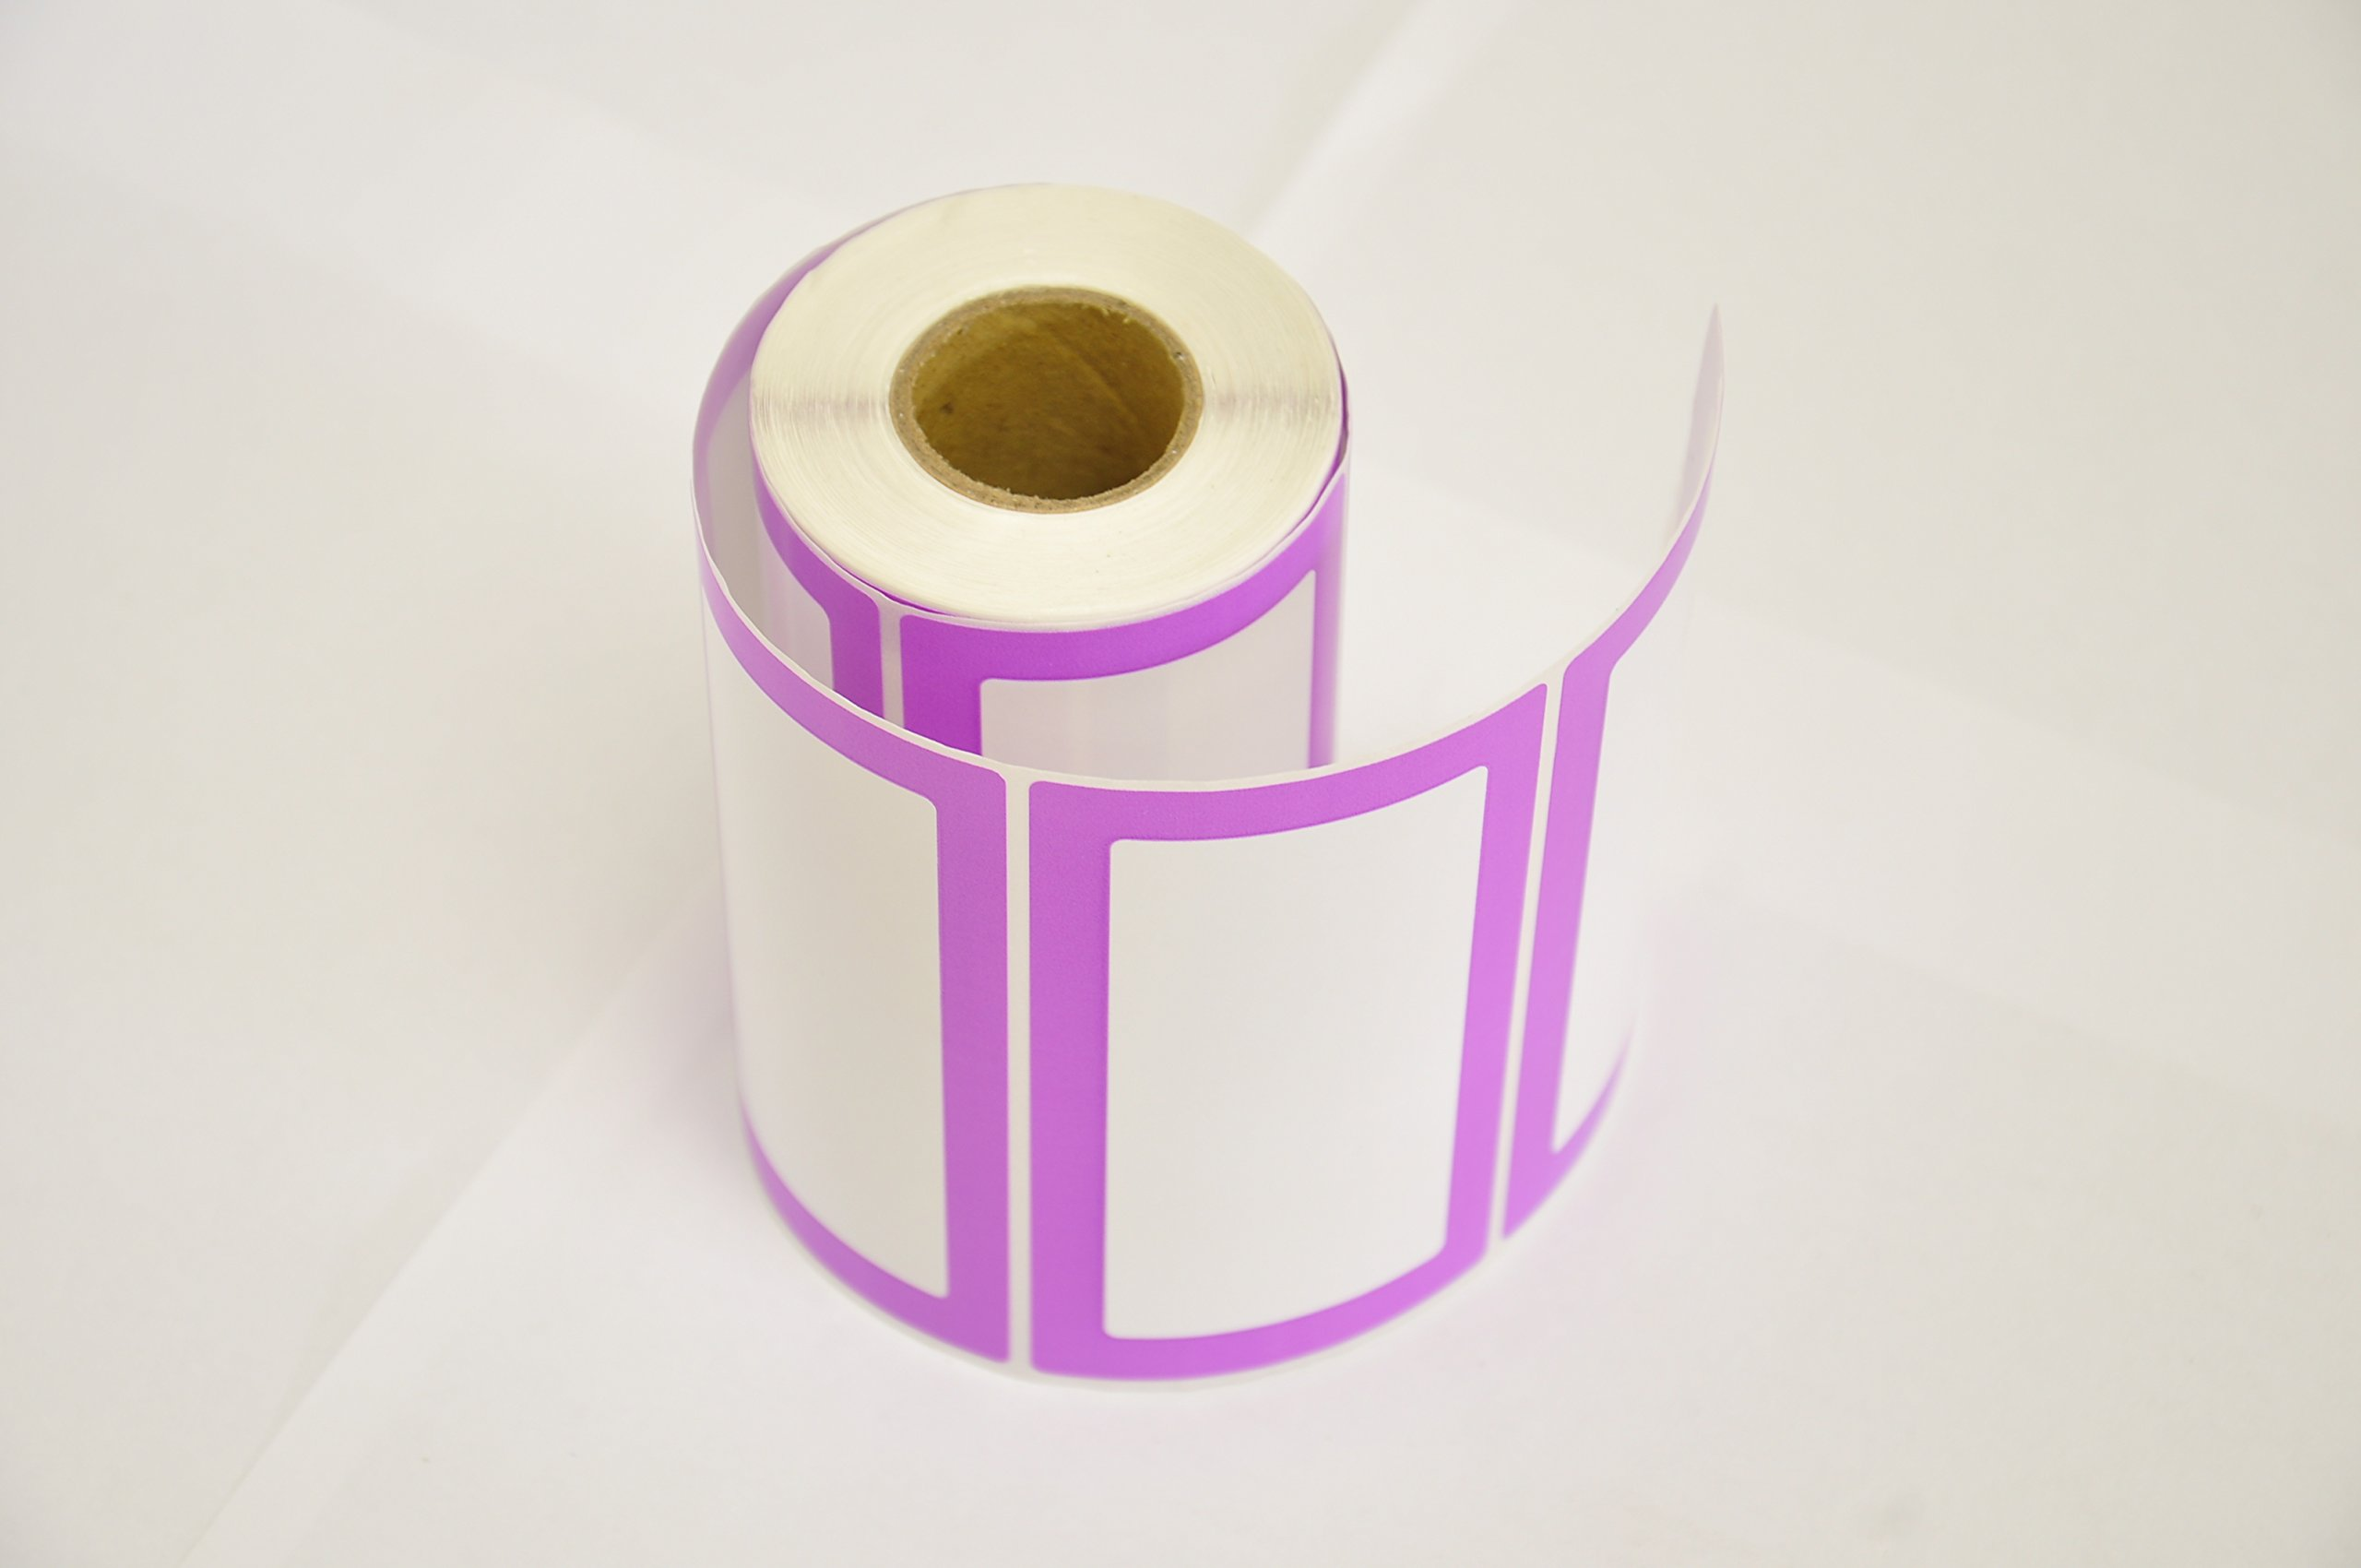 Colorful Plain Name Tag Labels - 2 Rolls 500 Stickers in Total - 3.5 x 2 inches - Nametags for Jars, Bottles, Food Containers, Folders, Birthday Parties and Kids Clothes (Purple/Purple 2 Pack) by Navy Penguin (Image #5)